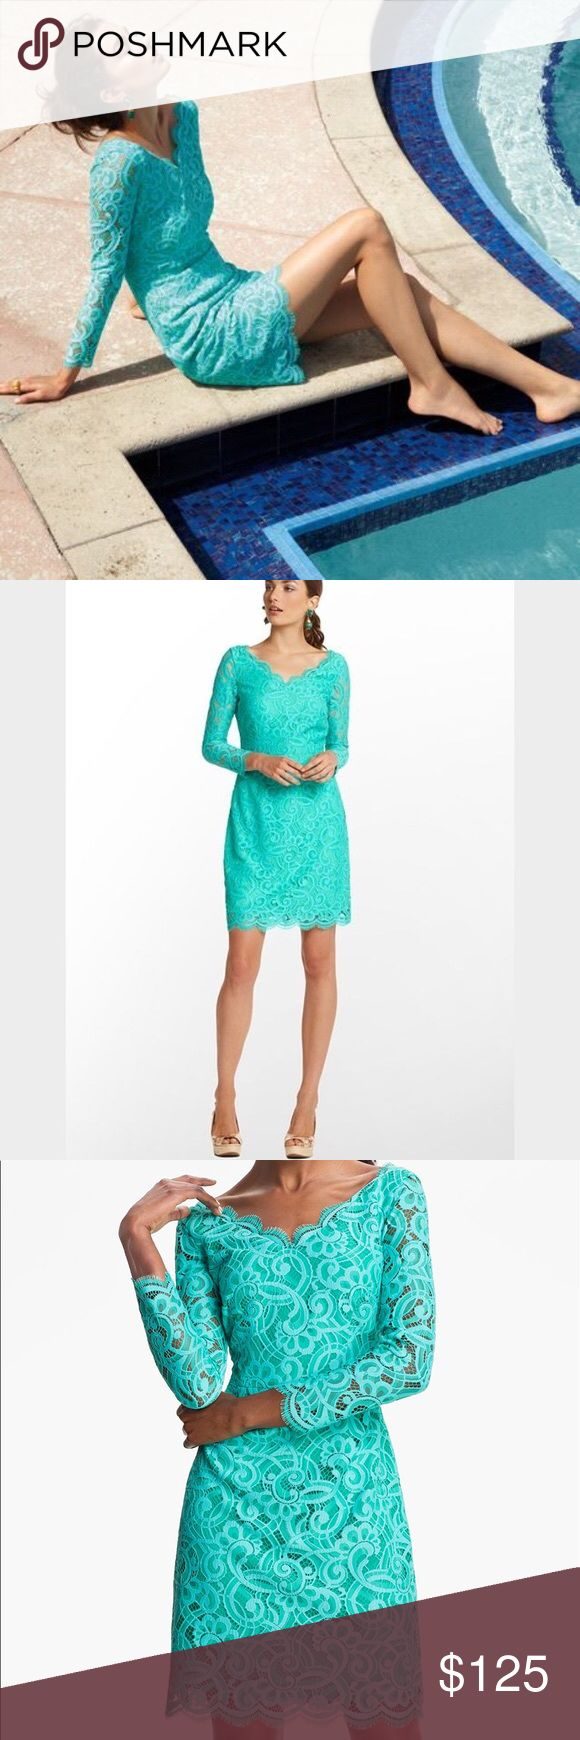 Lilly Pulitzer Helene Lagoon Green Lace Dress Lilly Pulitzer Helene Lagoon Green About Face Lace Dress. Turquoise Blue-Green. Worn once. Please let me know if you have any questions. Lilly Pulitzer Dresses Mini